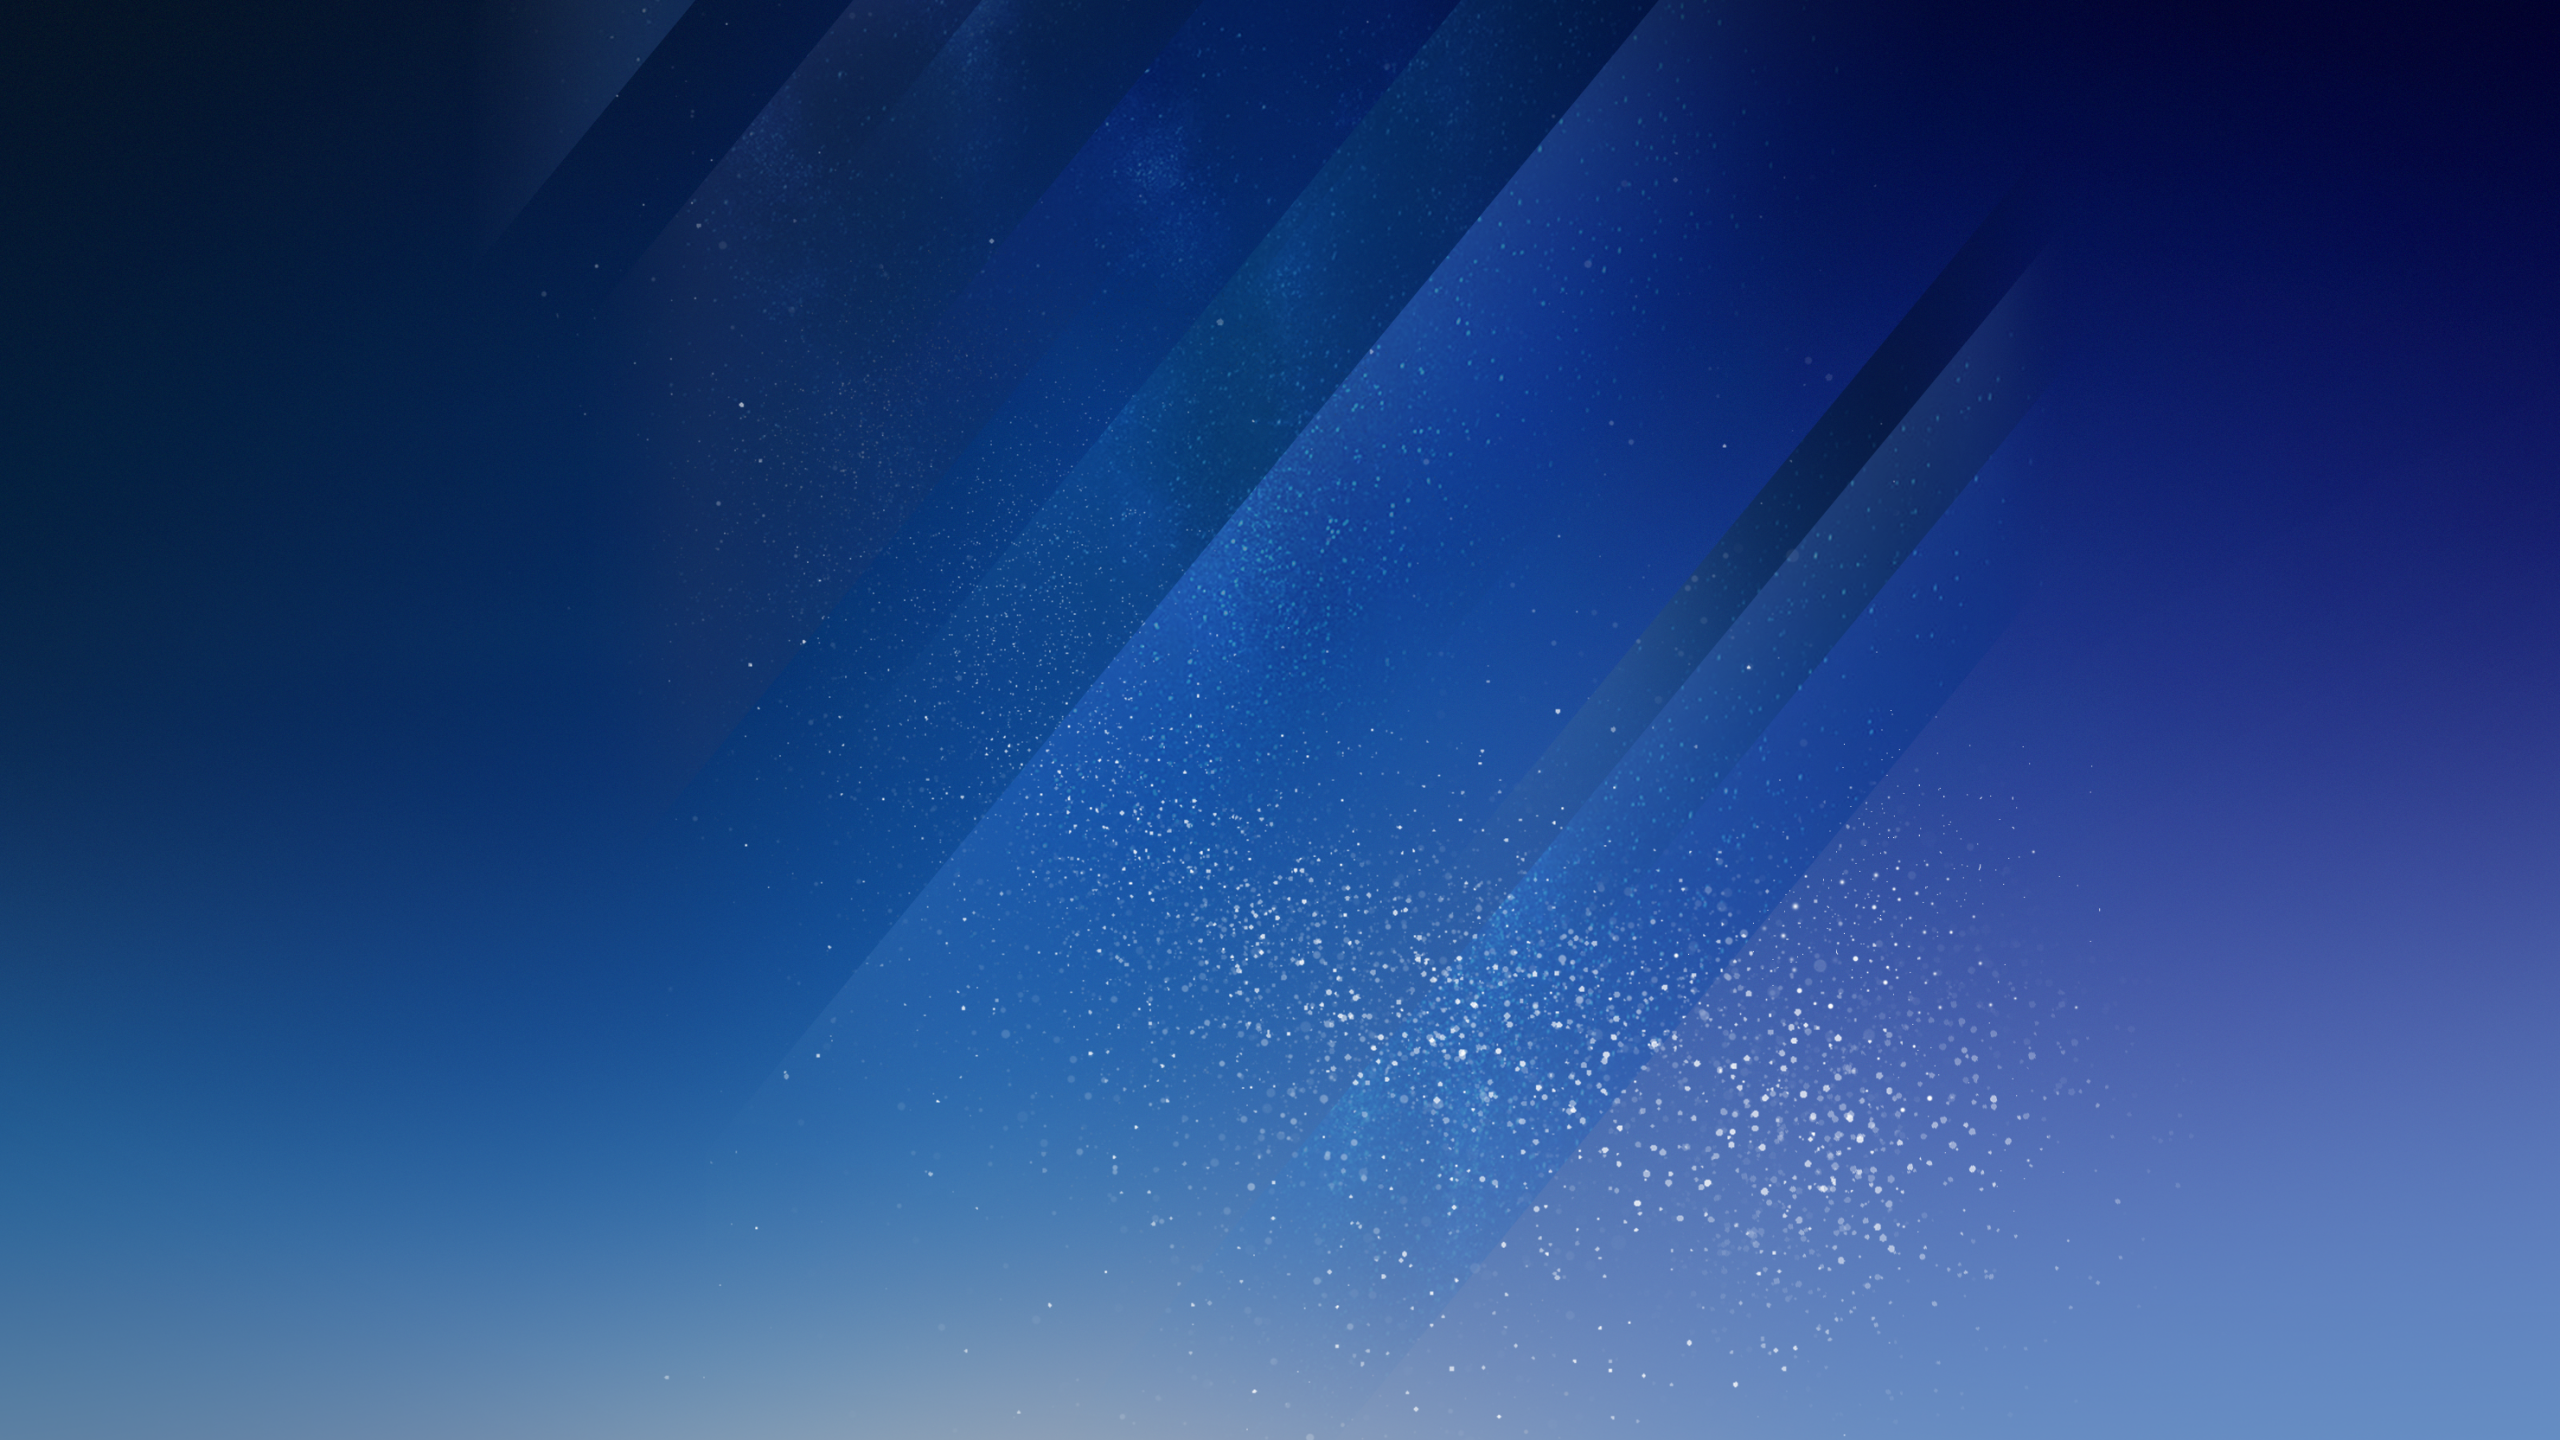 Wallpaper Samsung Galaxy S8, Android 8.0, Android Oreo